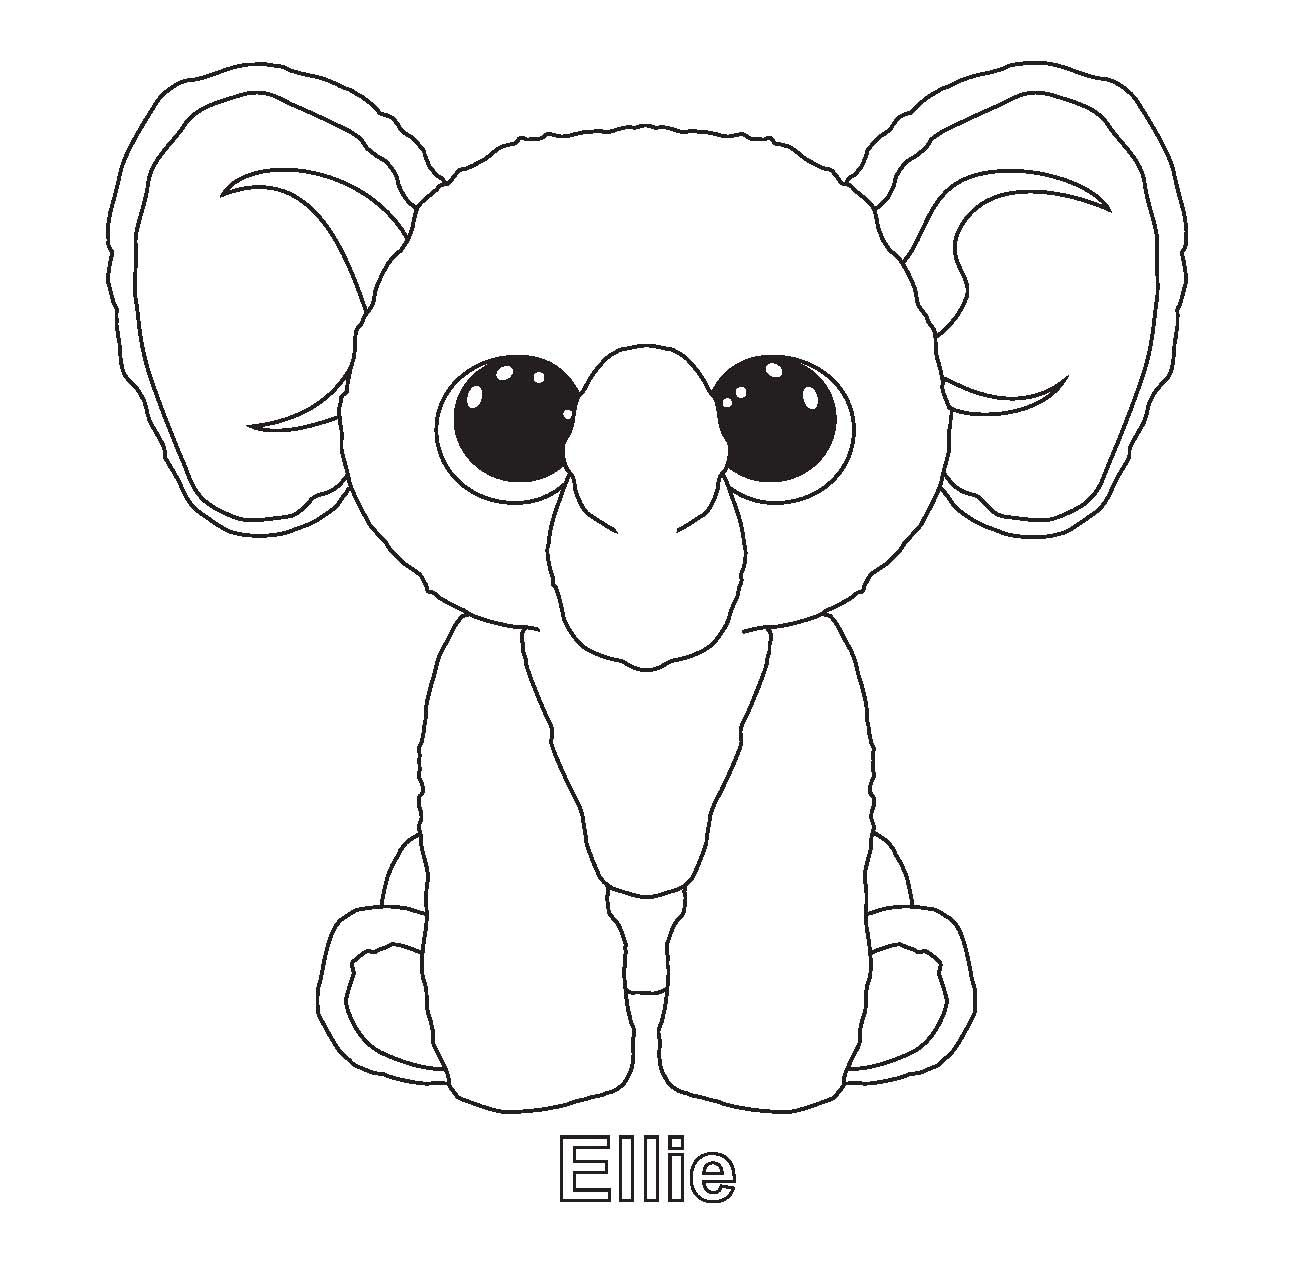 1289x1272 Ellie And Other Ty Beenie Boo Coloring Sheets Beanie Boo